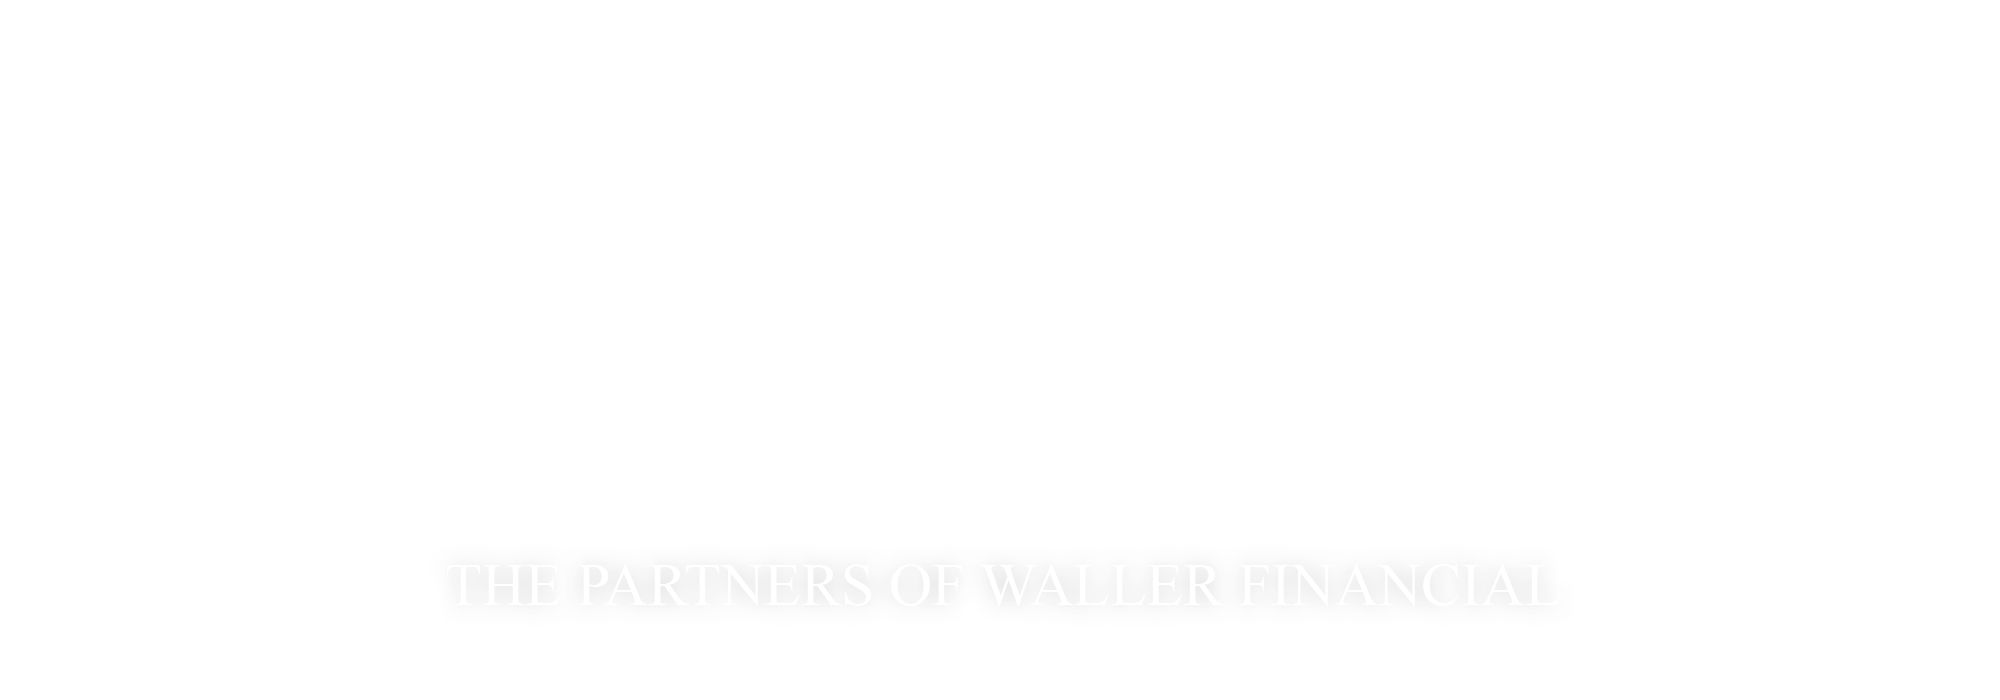 waller-partners-tagline-1